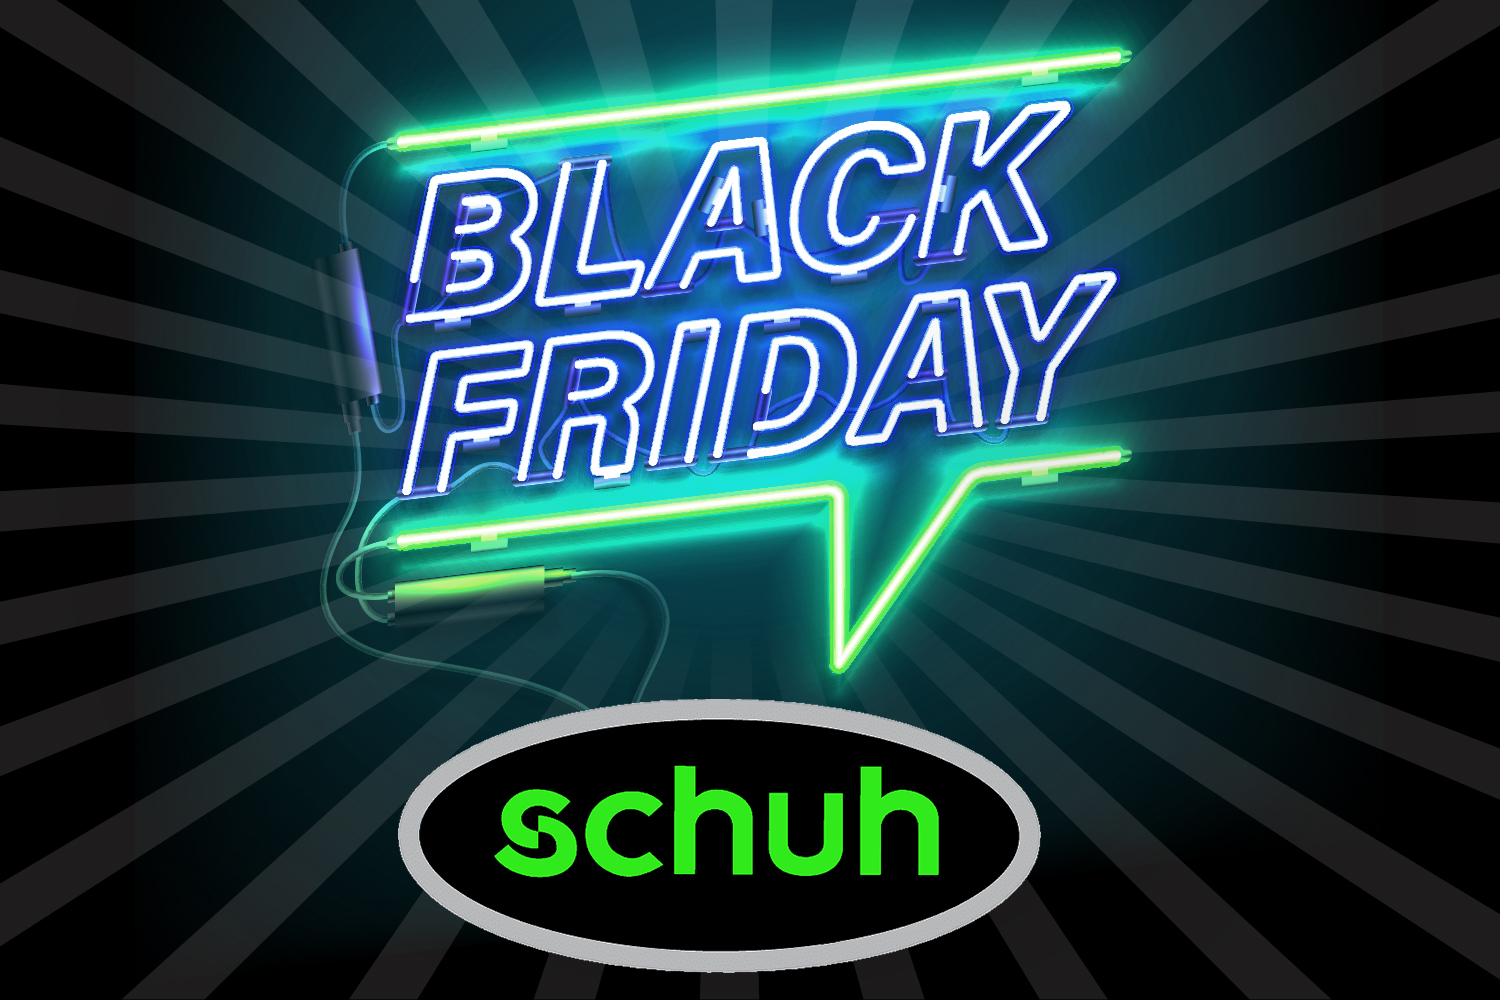 Schuh is set to slash its prices this Black Friday